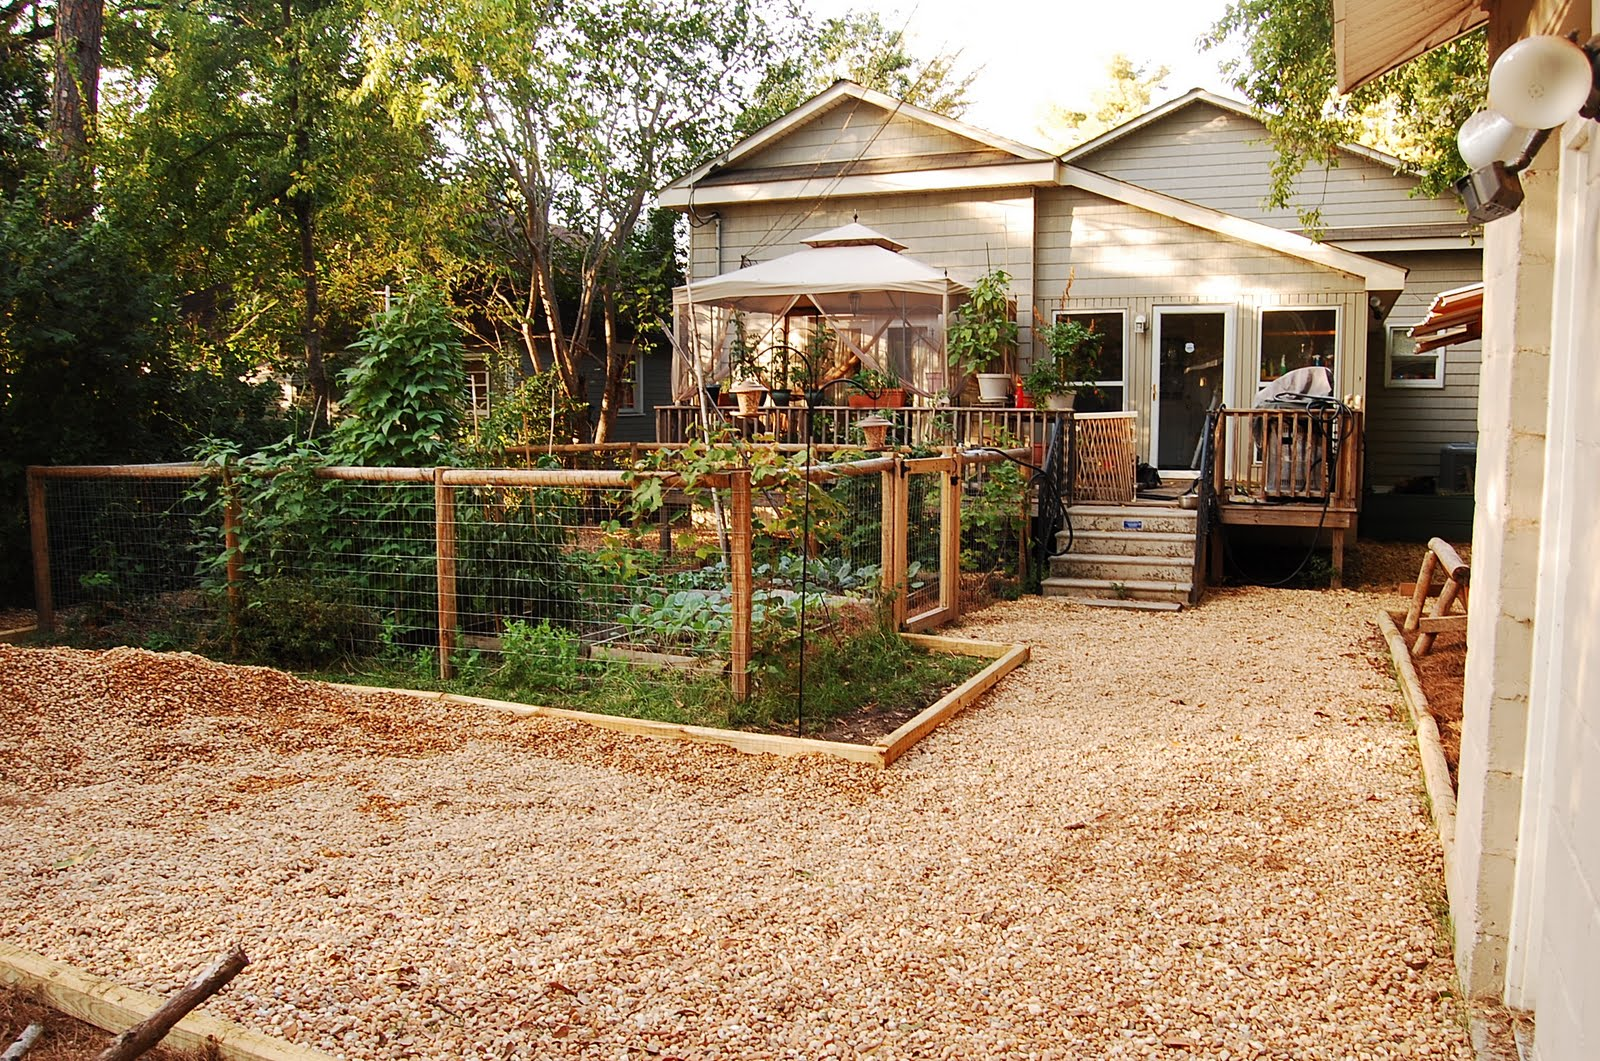 Urban Self-Sufficientist: Backyard remodel on the Cheap